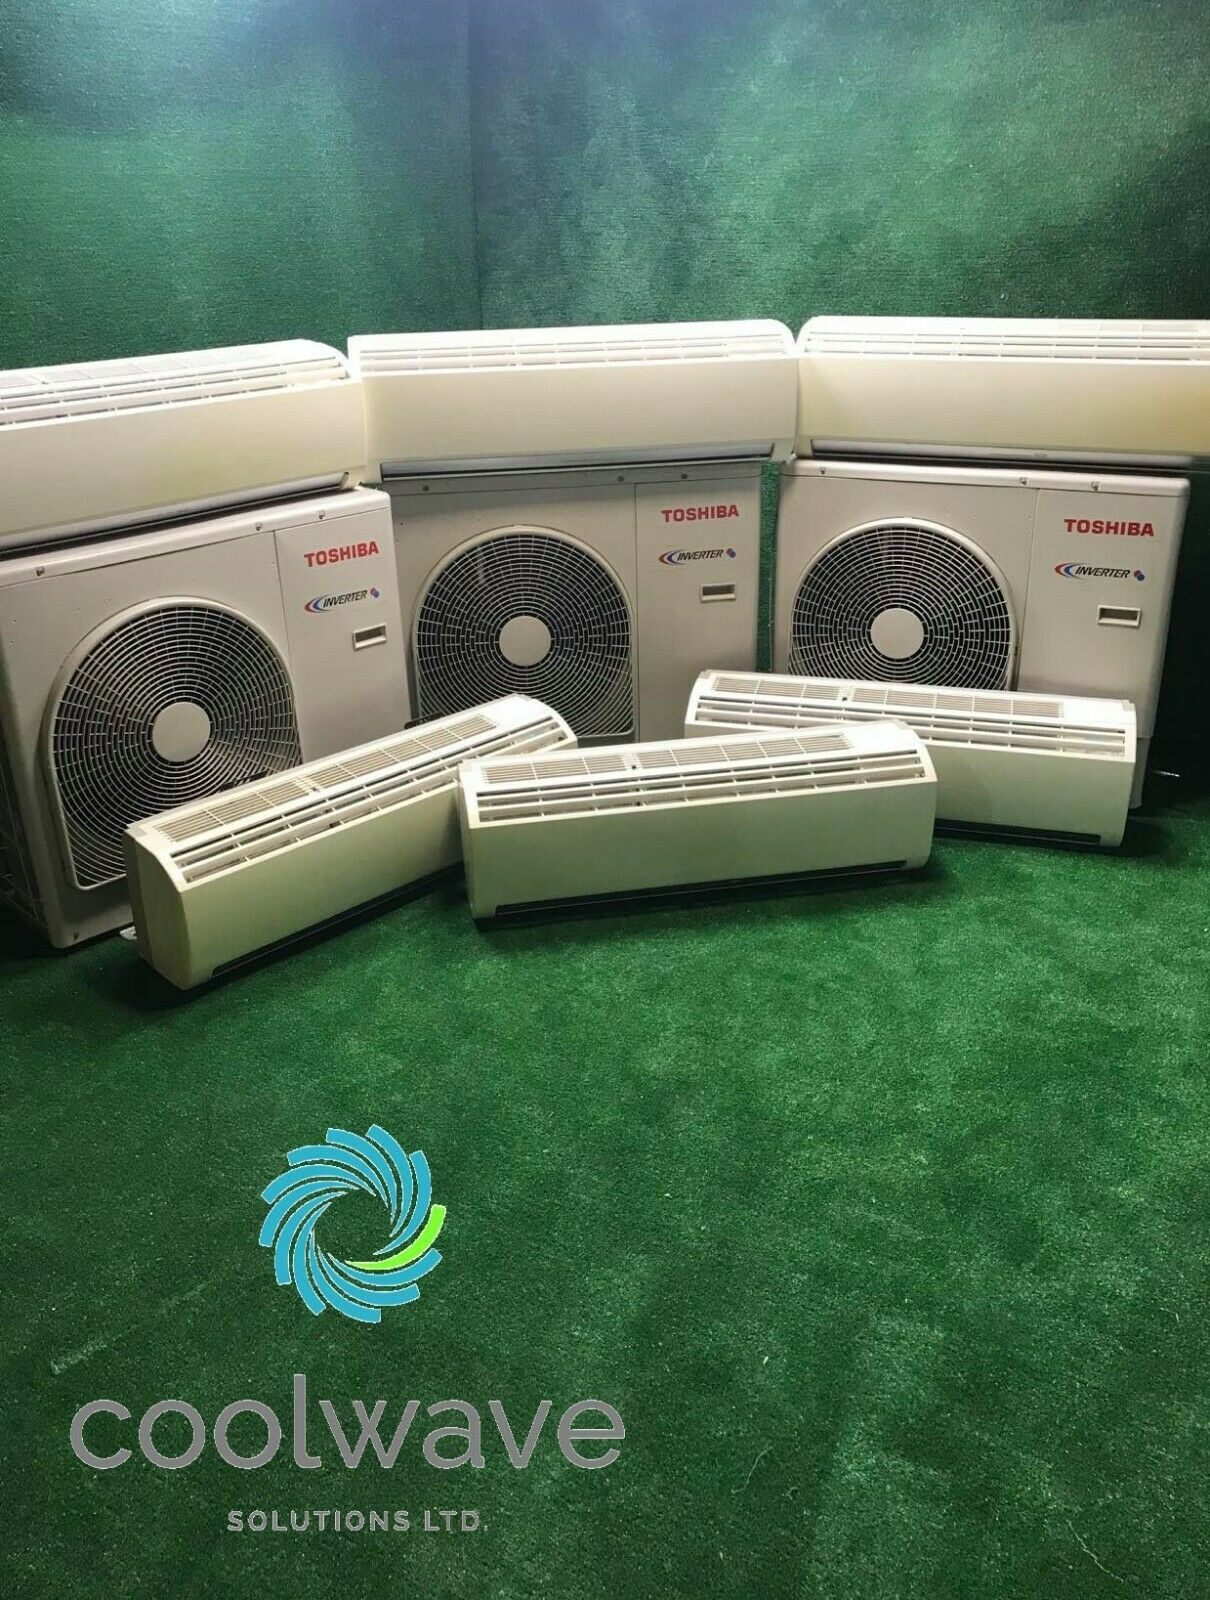 toshiba used air conditioning